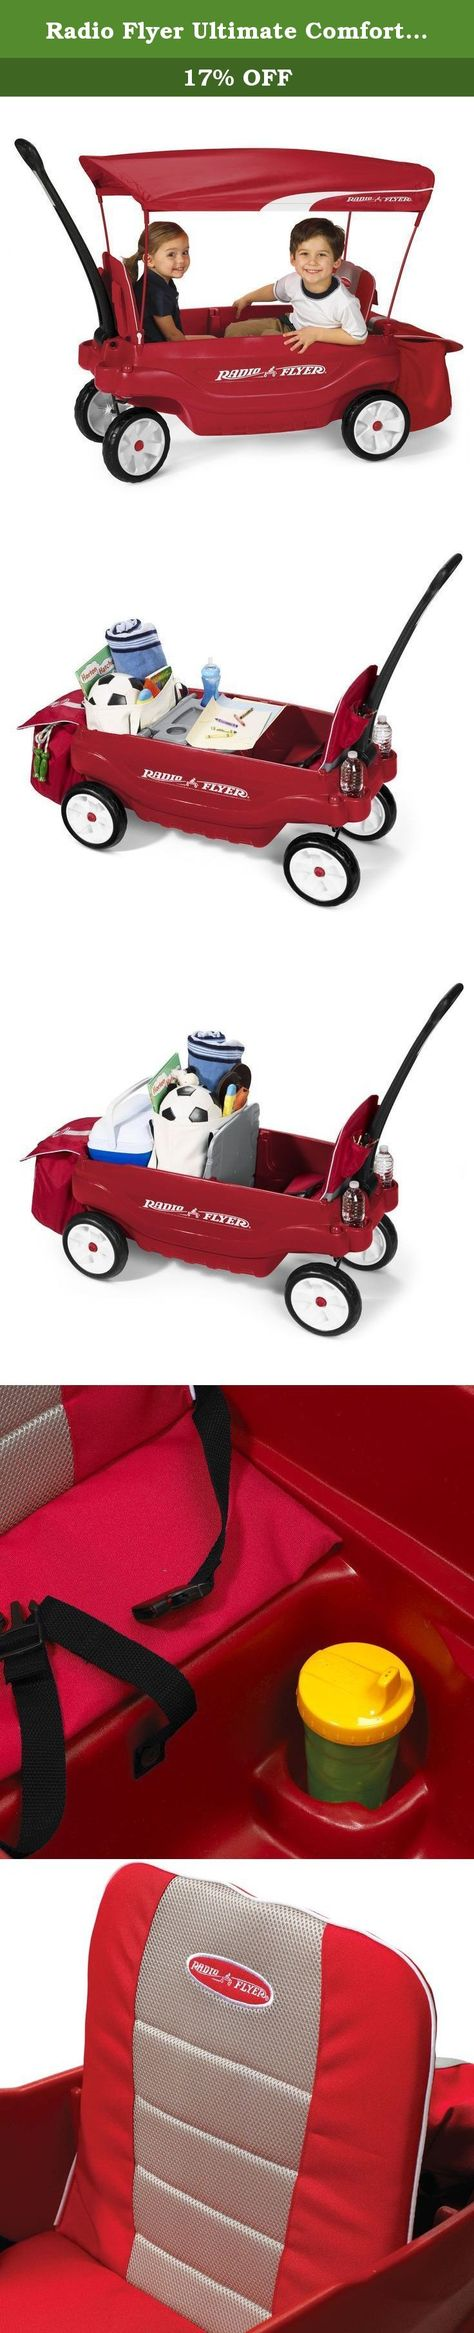 Radio Flyer Ultimate Comfort Wagon Ultimate Comfort Wagon This Wagon Combines The Best In Versatility And Comfort Offer Bag Storage Cool Toys Storage Options